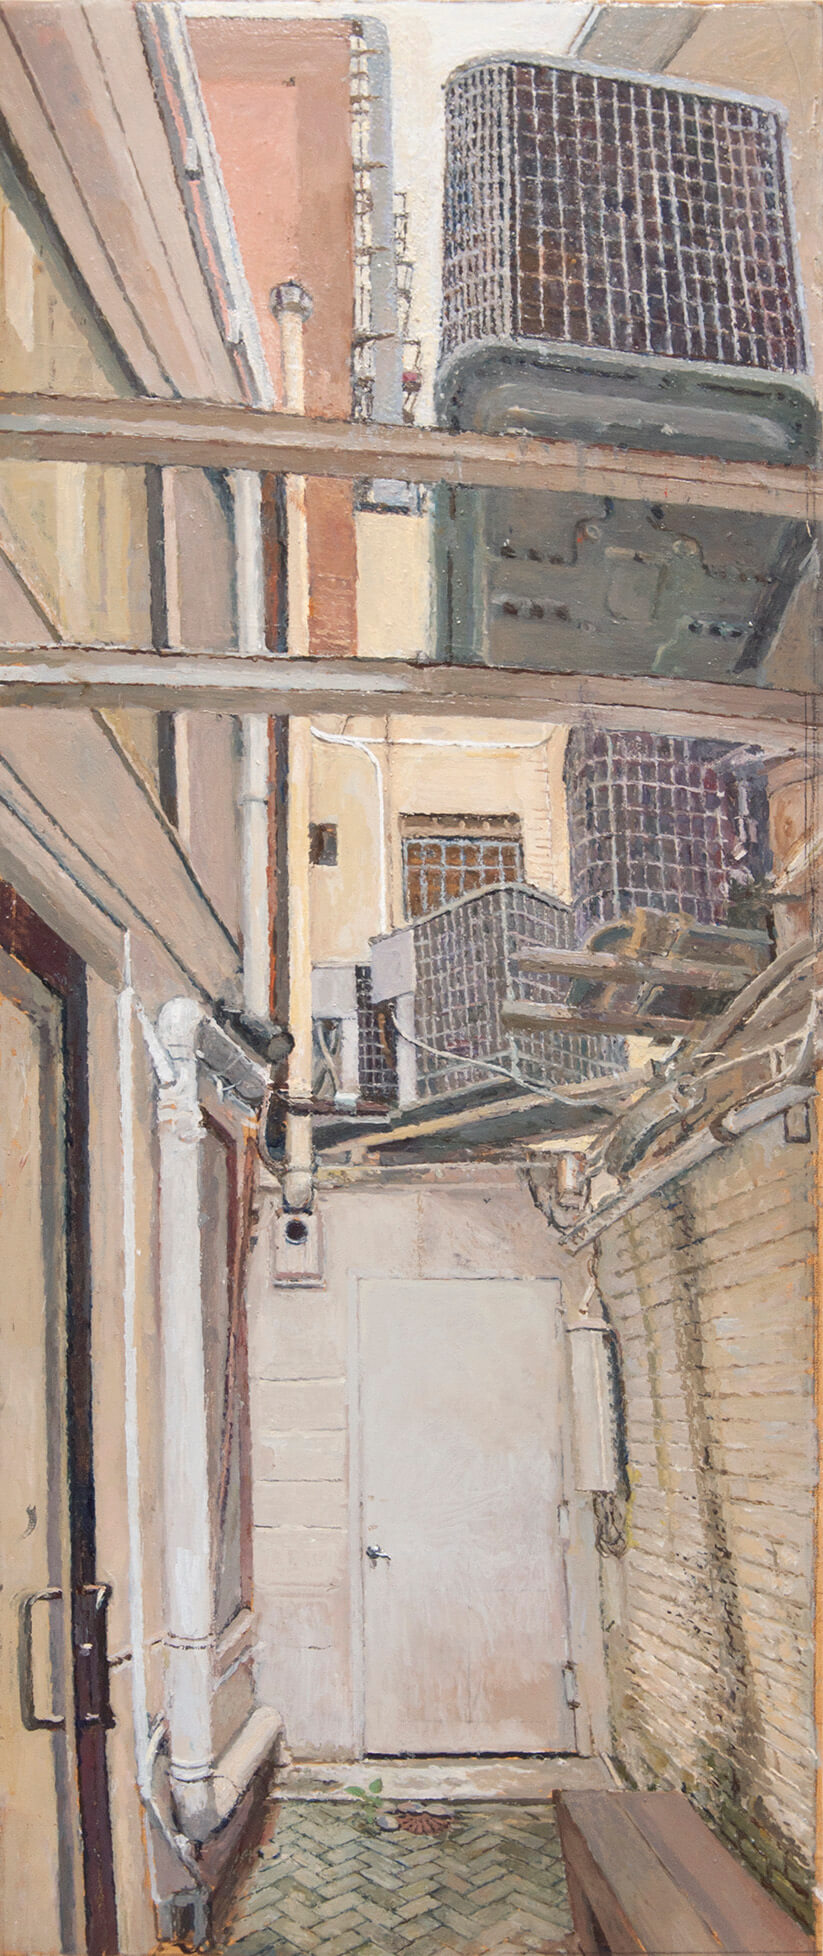 Rackstraw Downes, Outdoor Passageway at 15 Rivington, 2016, oil on canvas, 29 x 12 inches (courtesy of Betty Cunningham Gallery)